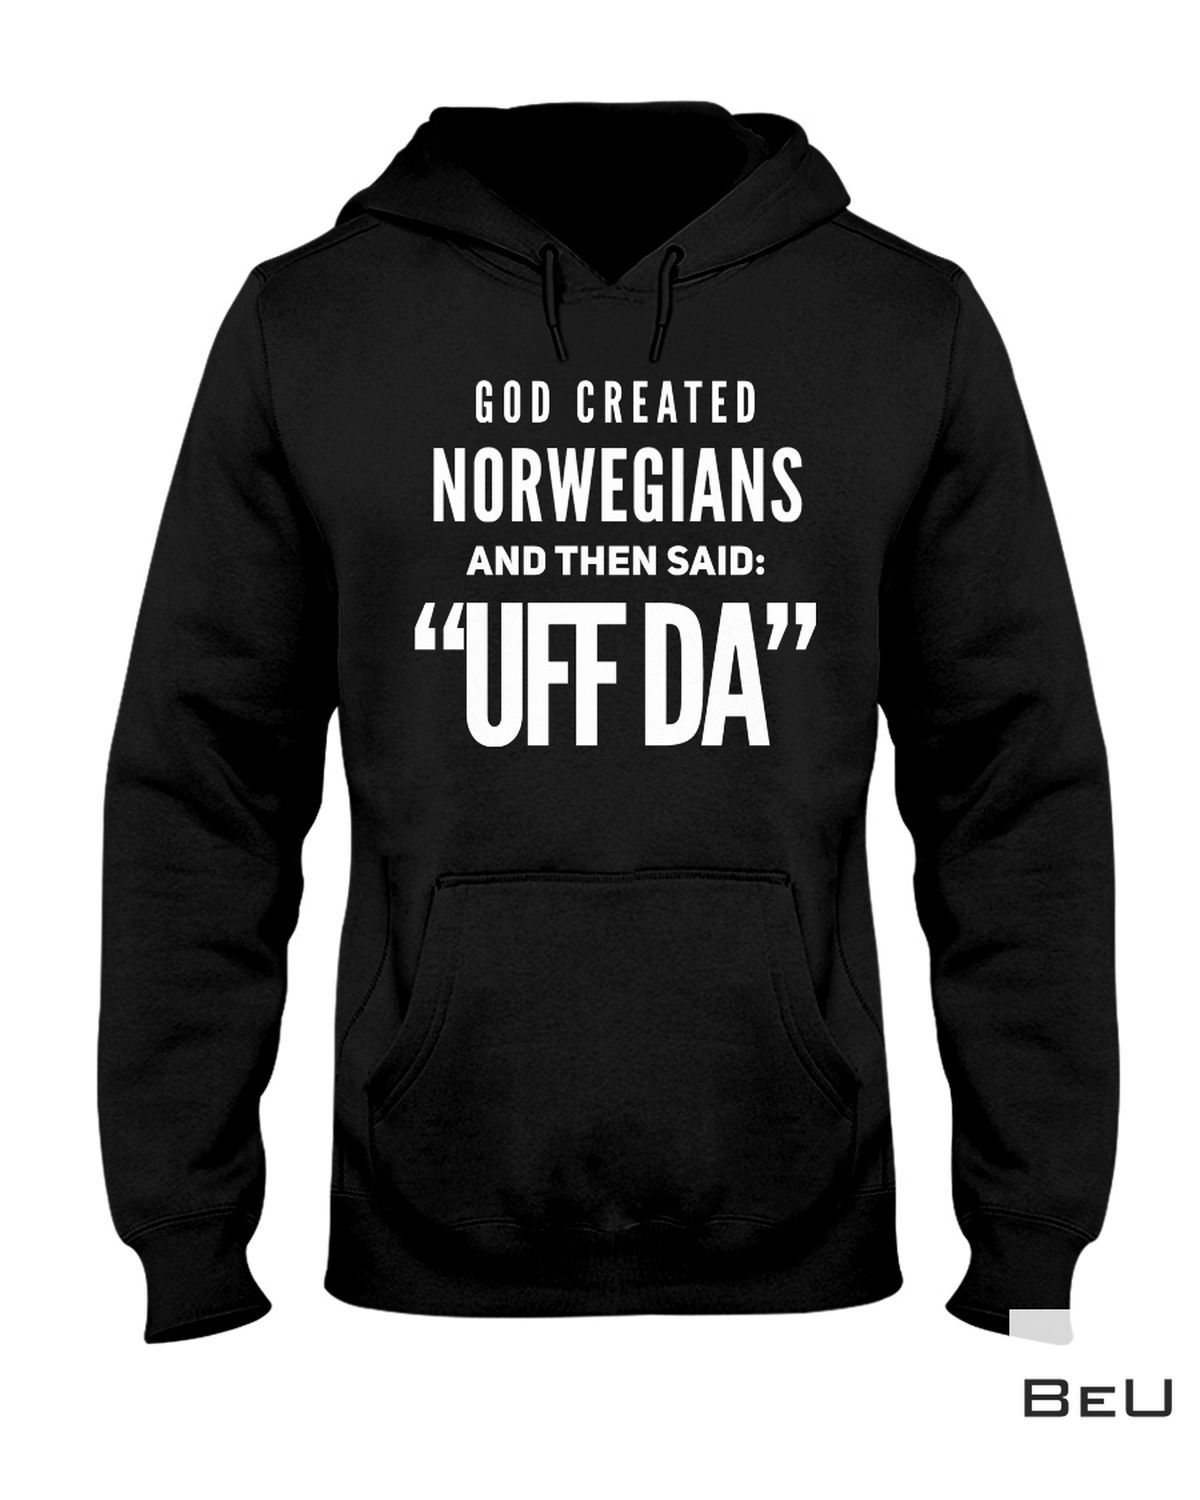 Only For Fan God Created Norwegians And Then Said Uff Da Shirt, hoodie